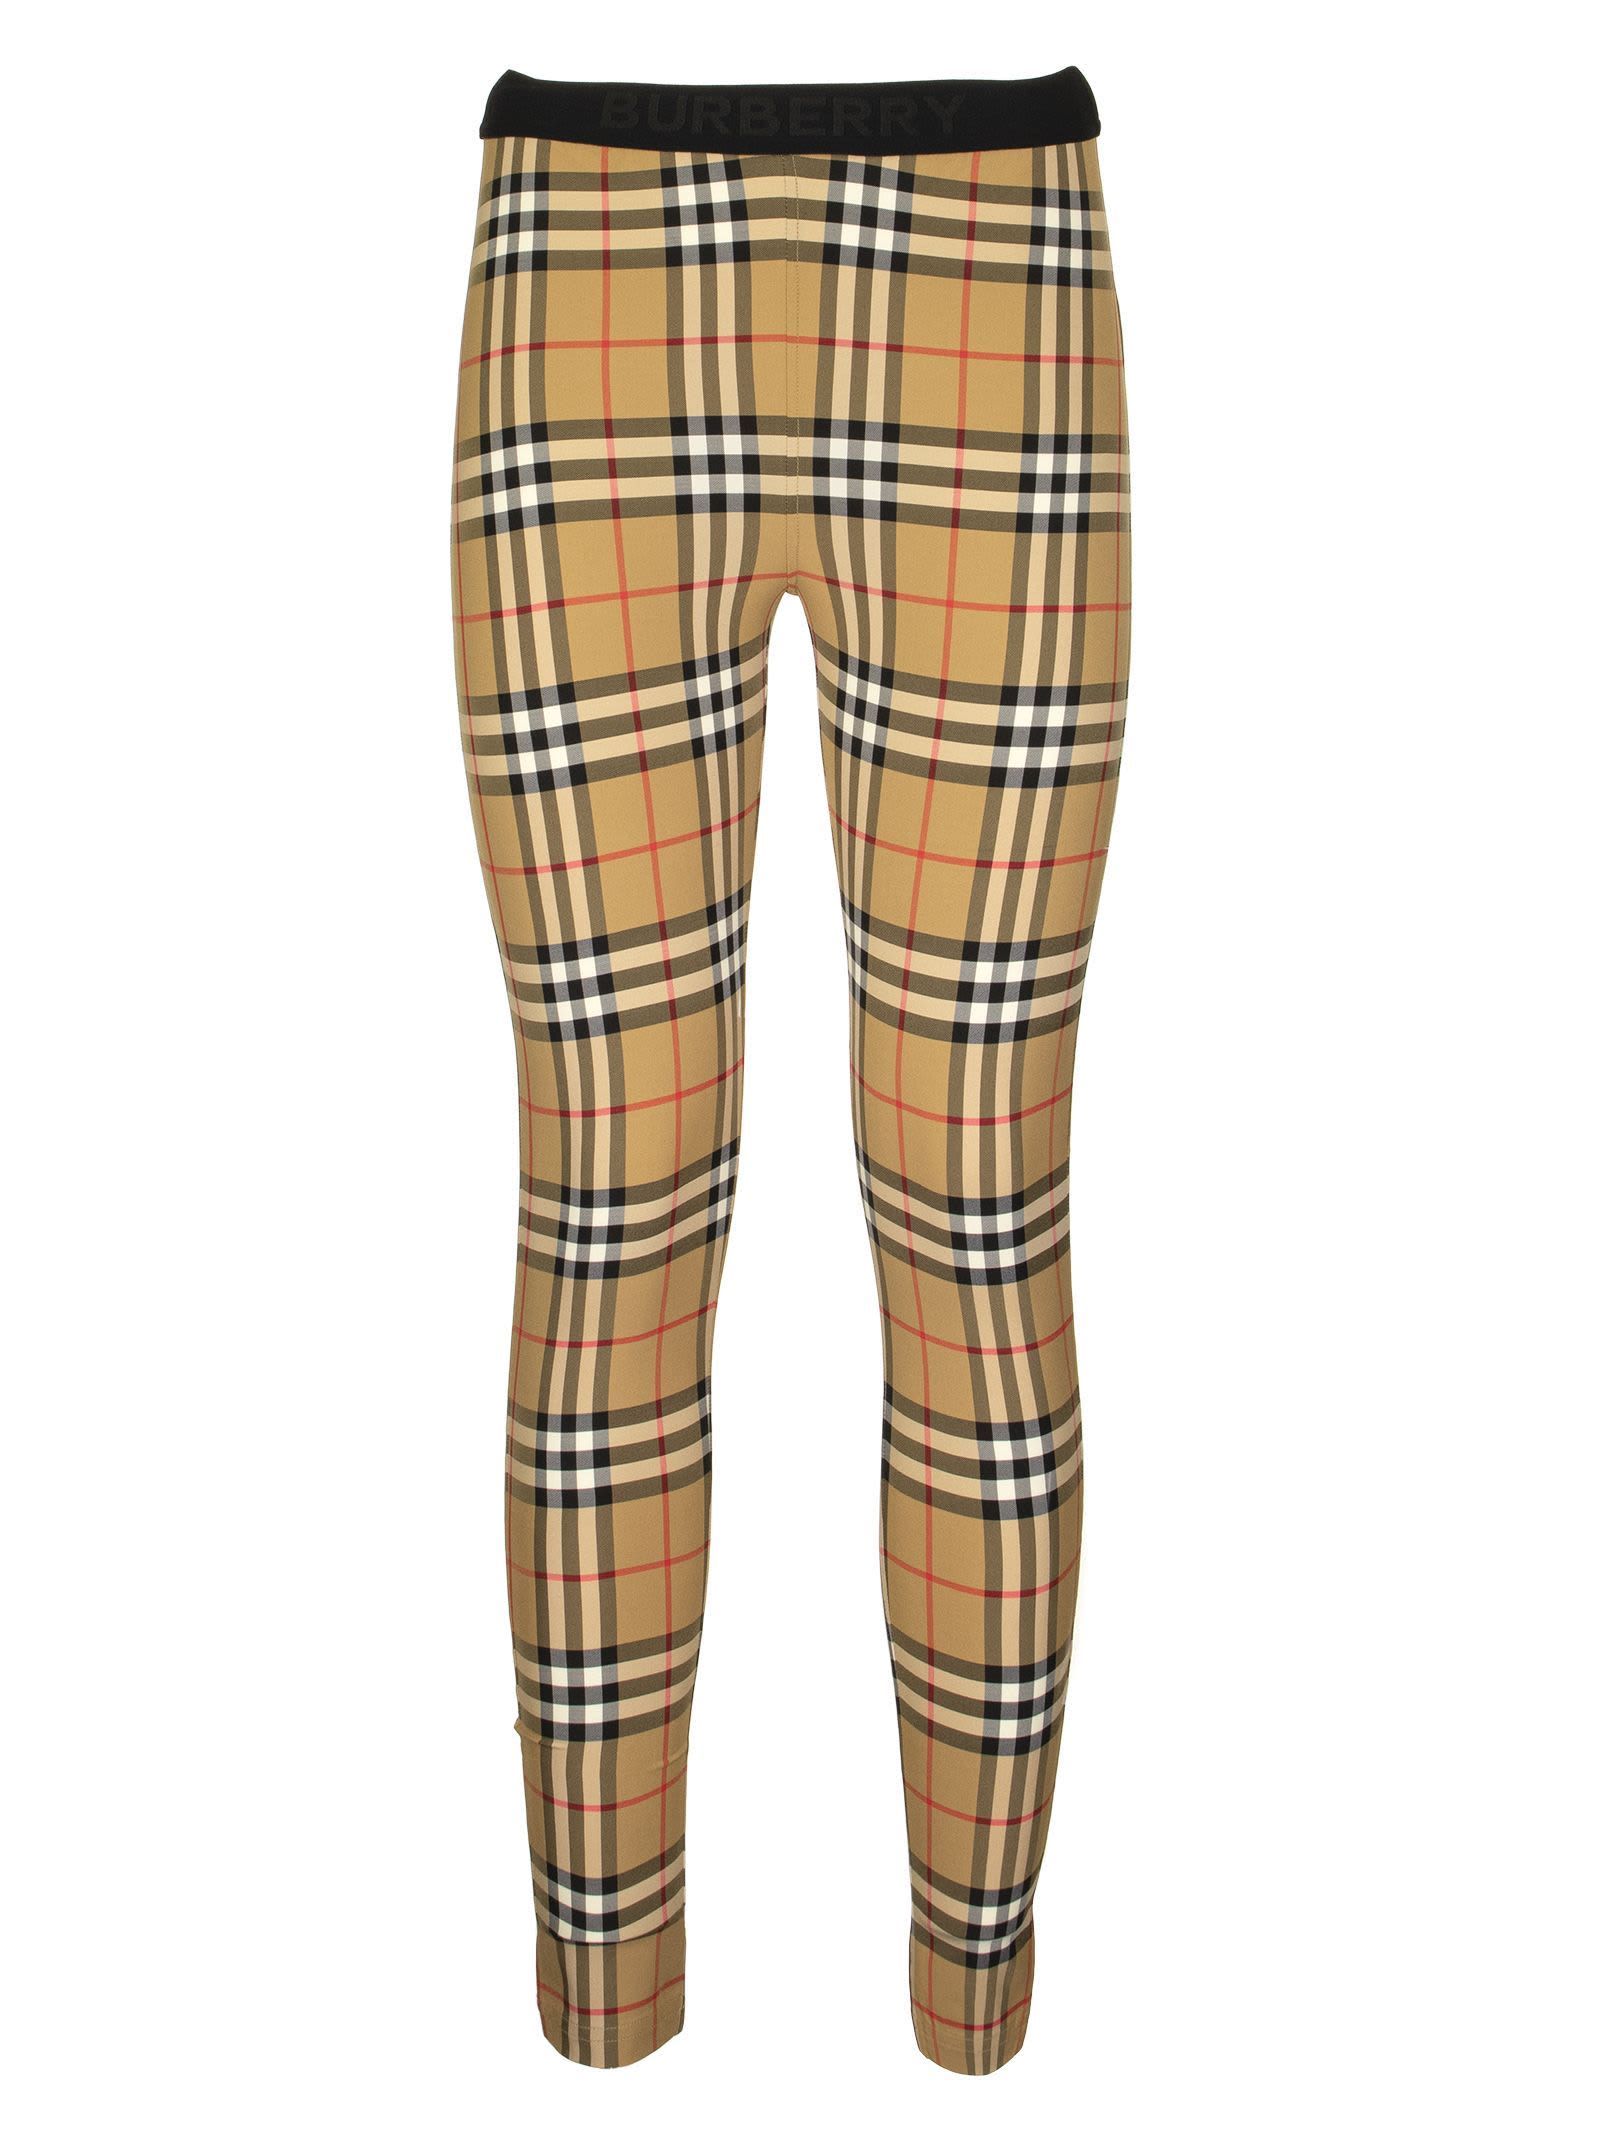 BURBERRY BELVOIR LOGO DETAIL VINTAGE CHECK LEGGINGS